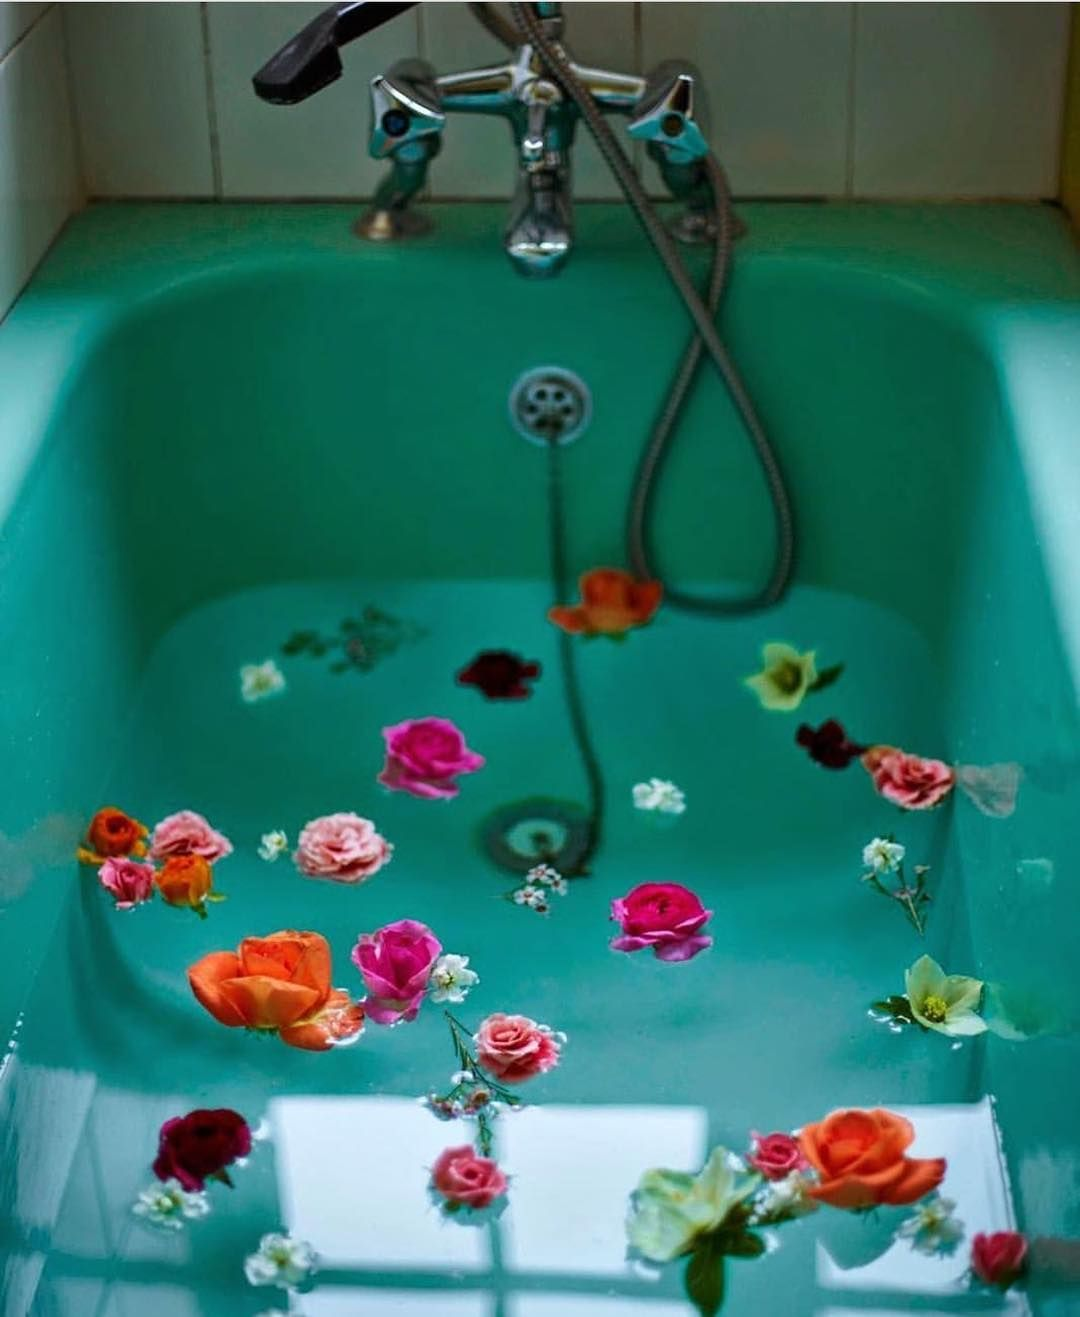 Aesthetic Bathtub Photography